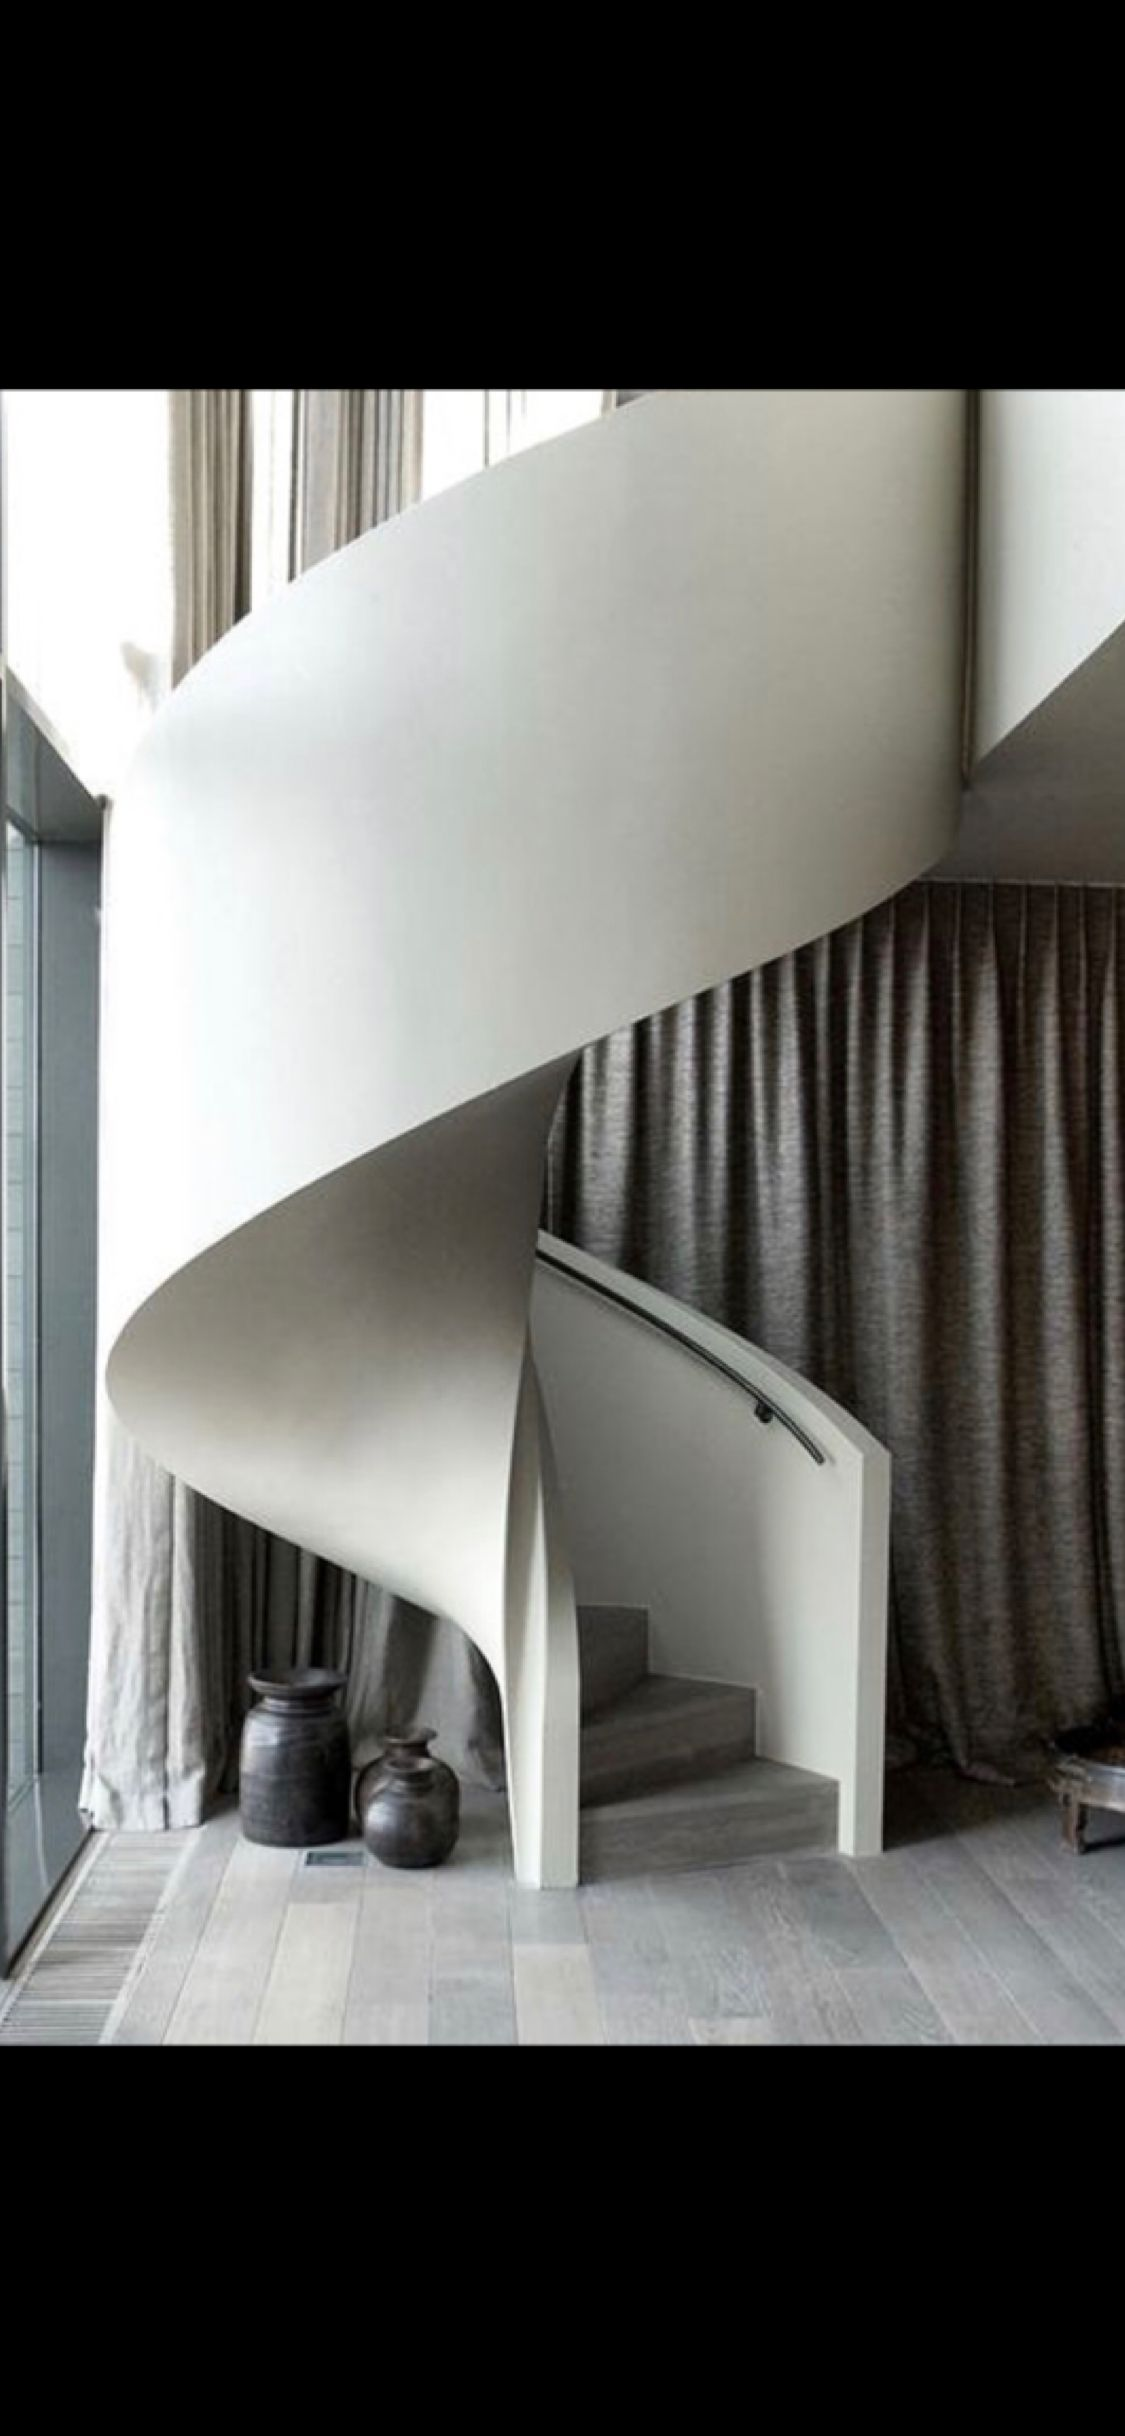 Captivating Use Stairs Throughout To Create Interest.